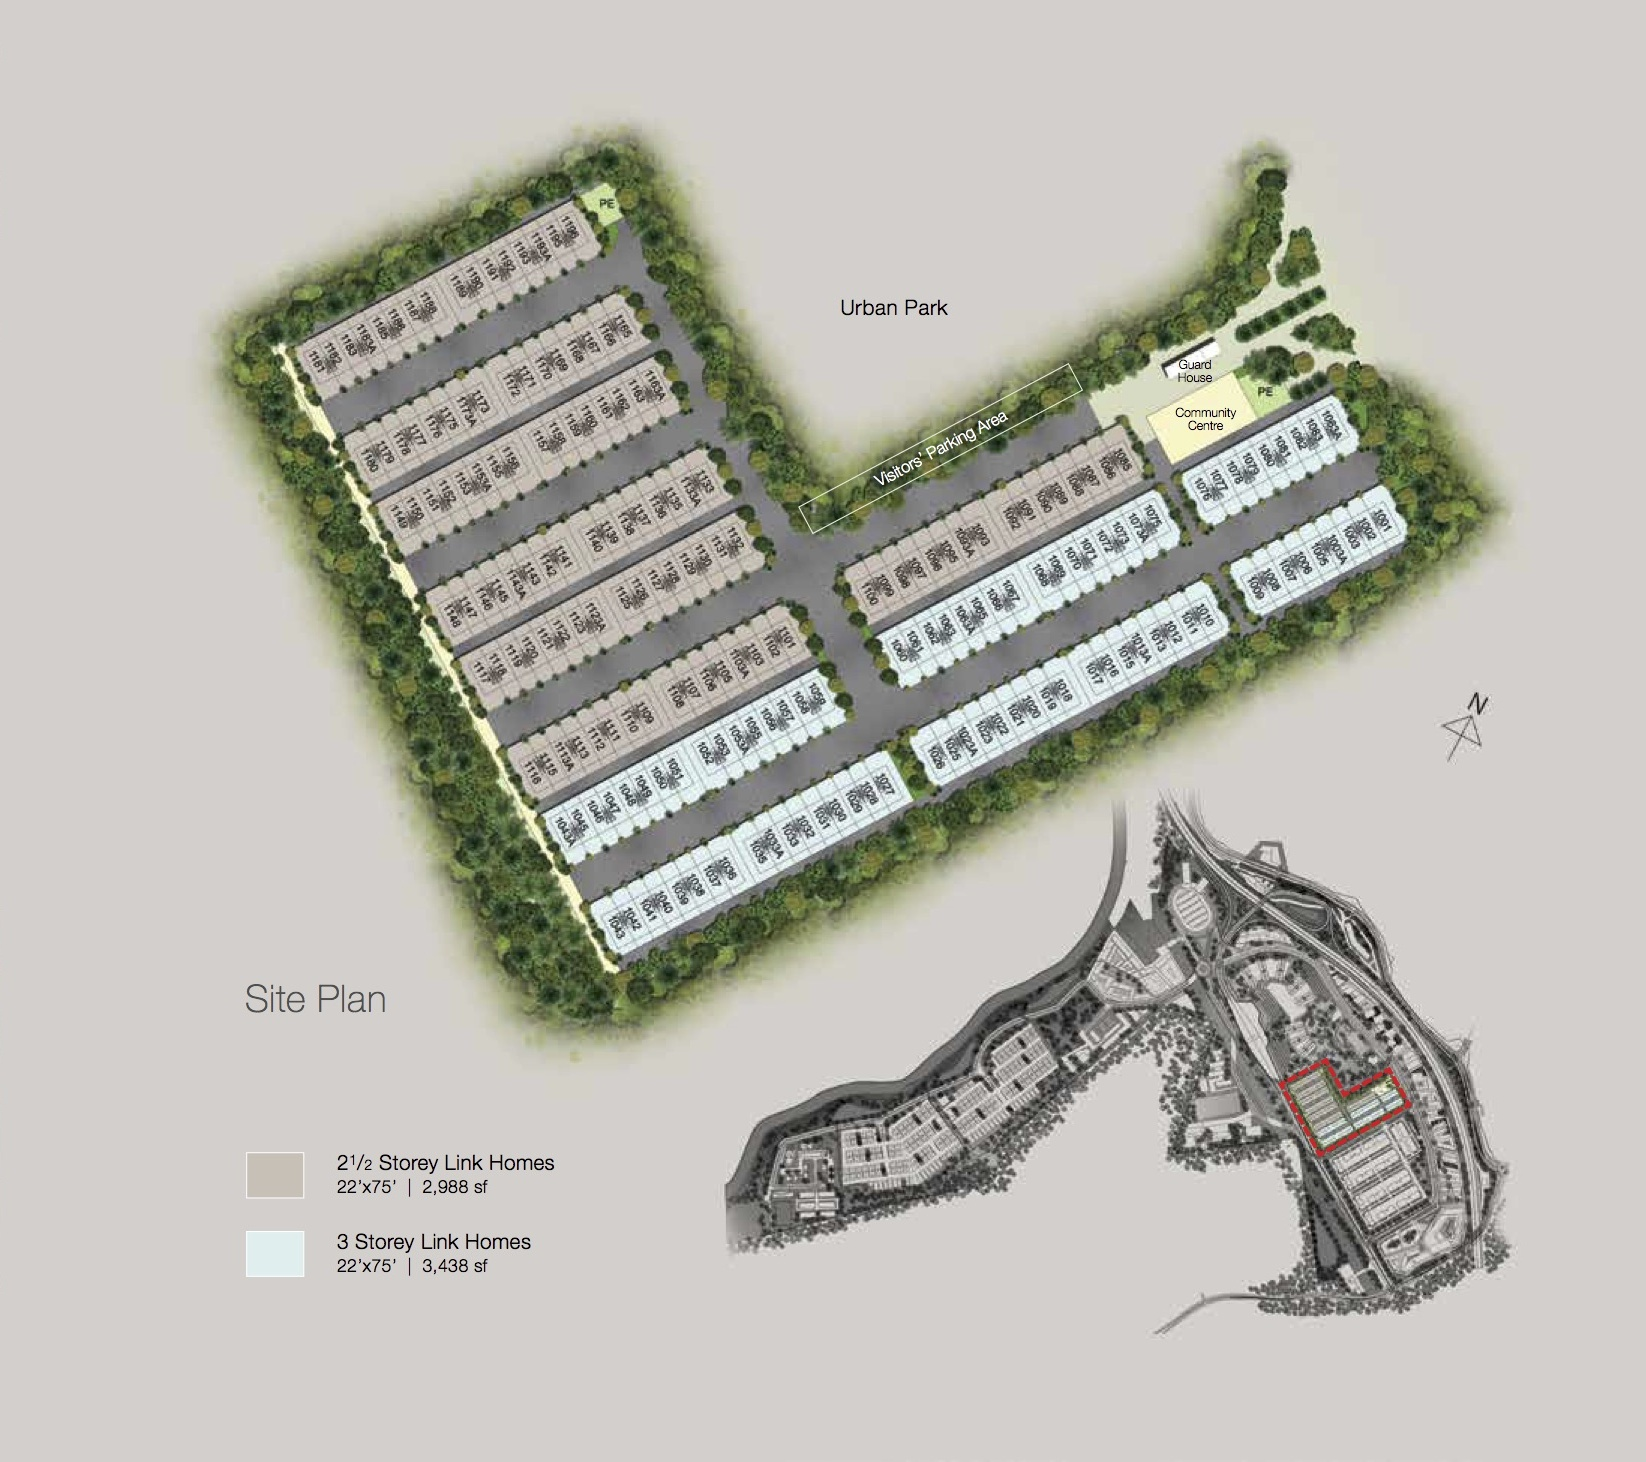 Site Plan of Avens Residence